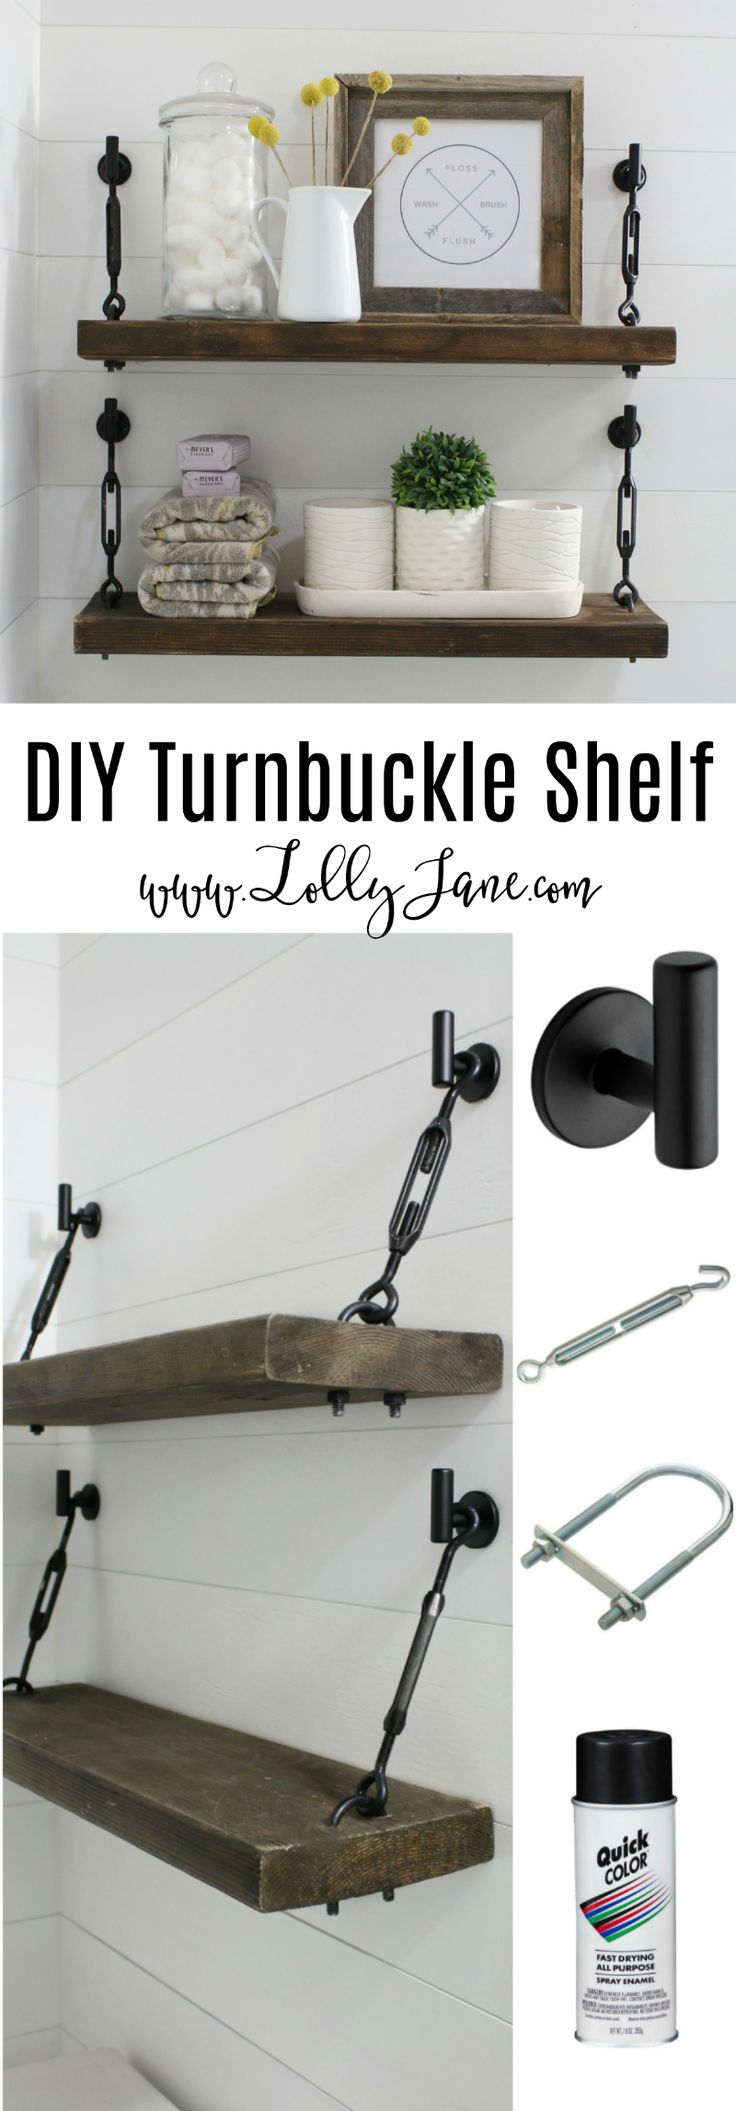 DIY Turnbuckle Shelf tutorial | Learn how easy it is to make these bathroom turnbuckle shelves! These would be so cute in any room of the house, farmhouse chic shelves look great and are sturdy enough for all your home decor needs!